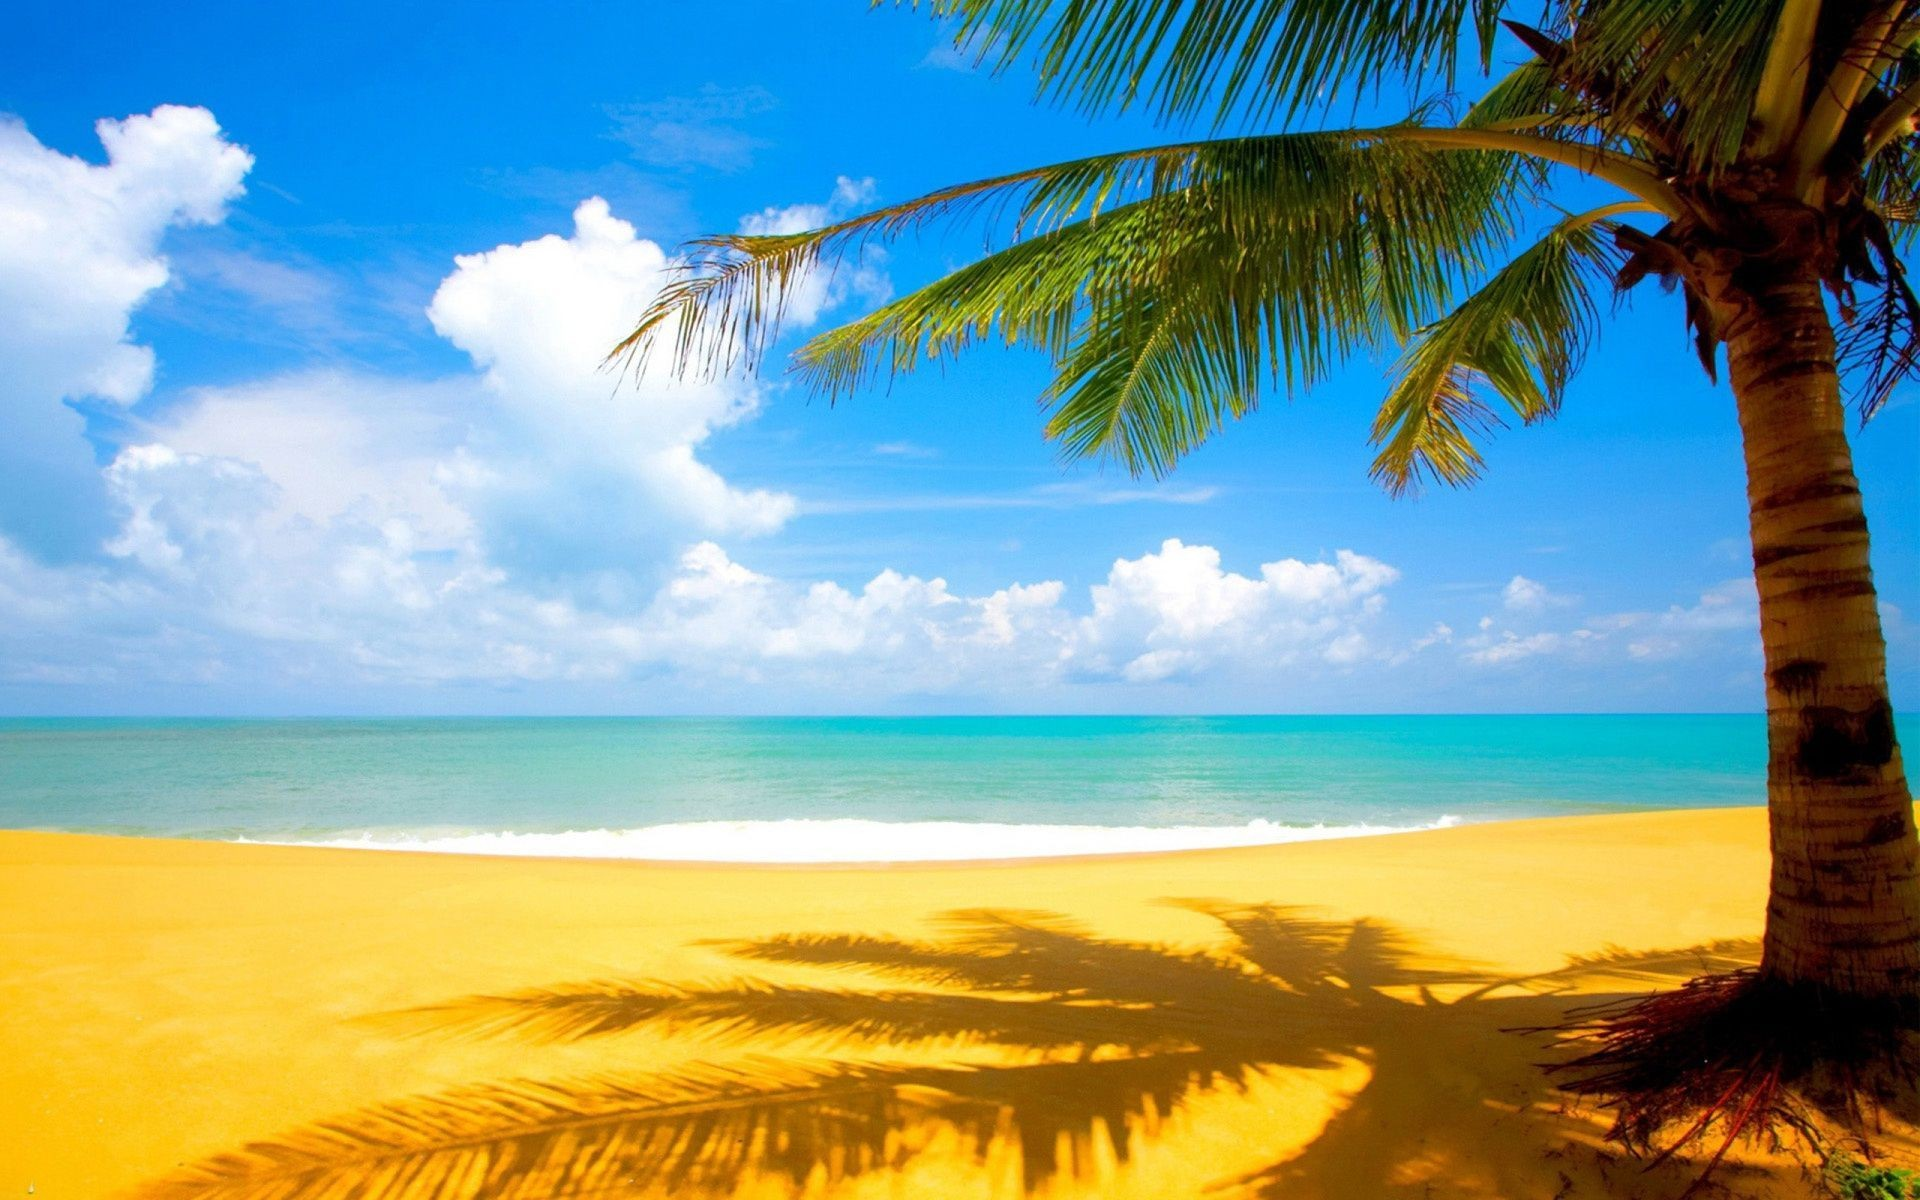 Beach Free Ipad Wallpapers: Palm Tree Wallpaper ·① Download Free HD Wallpapers For